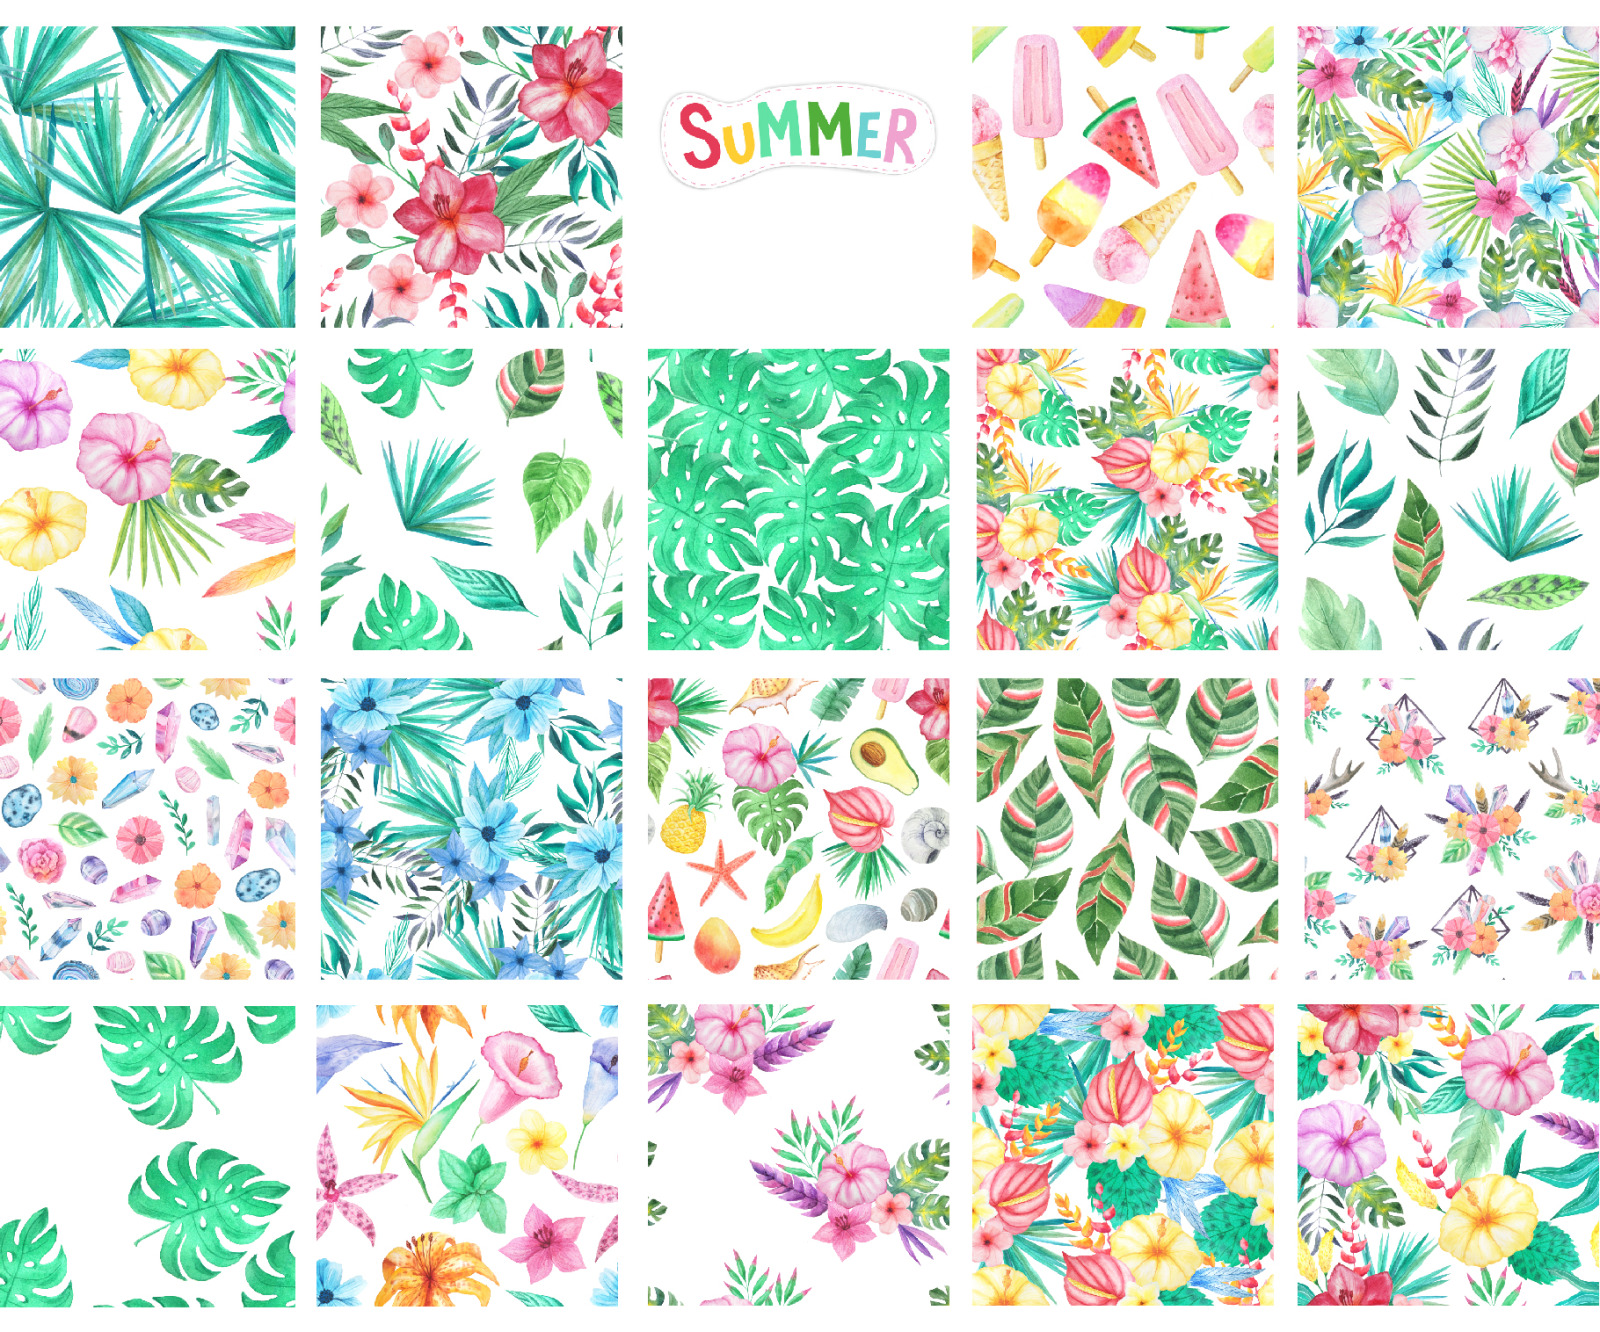 100 in 1 Watercolor Patterns Set